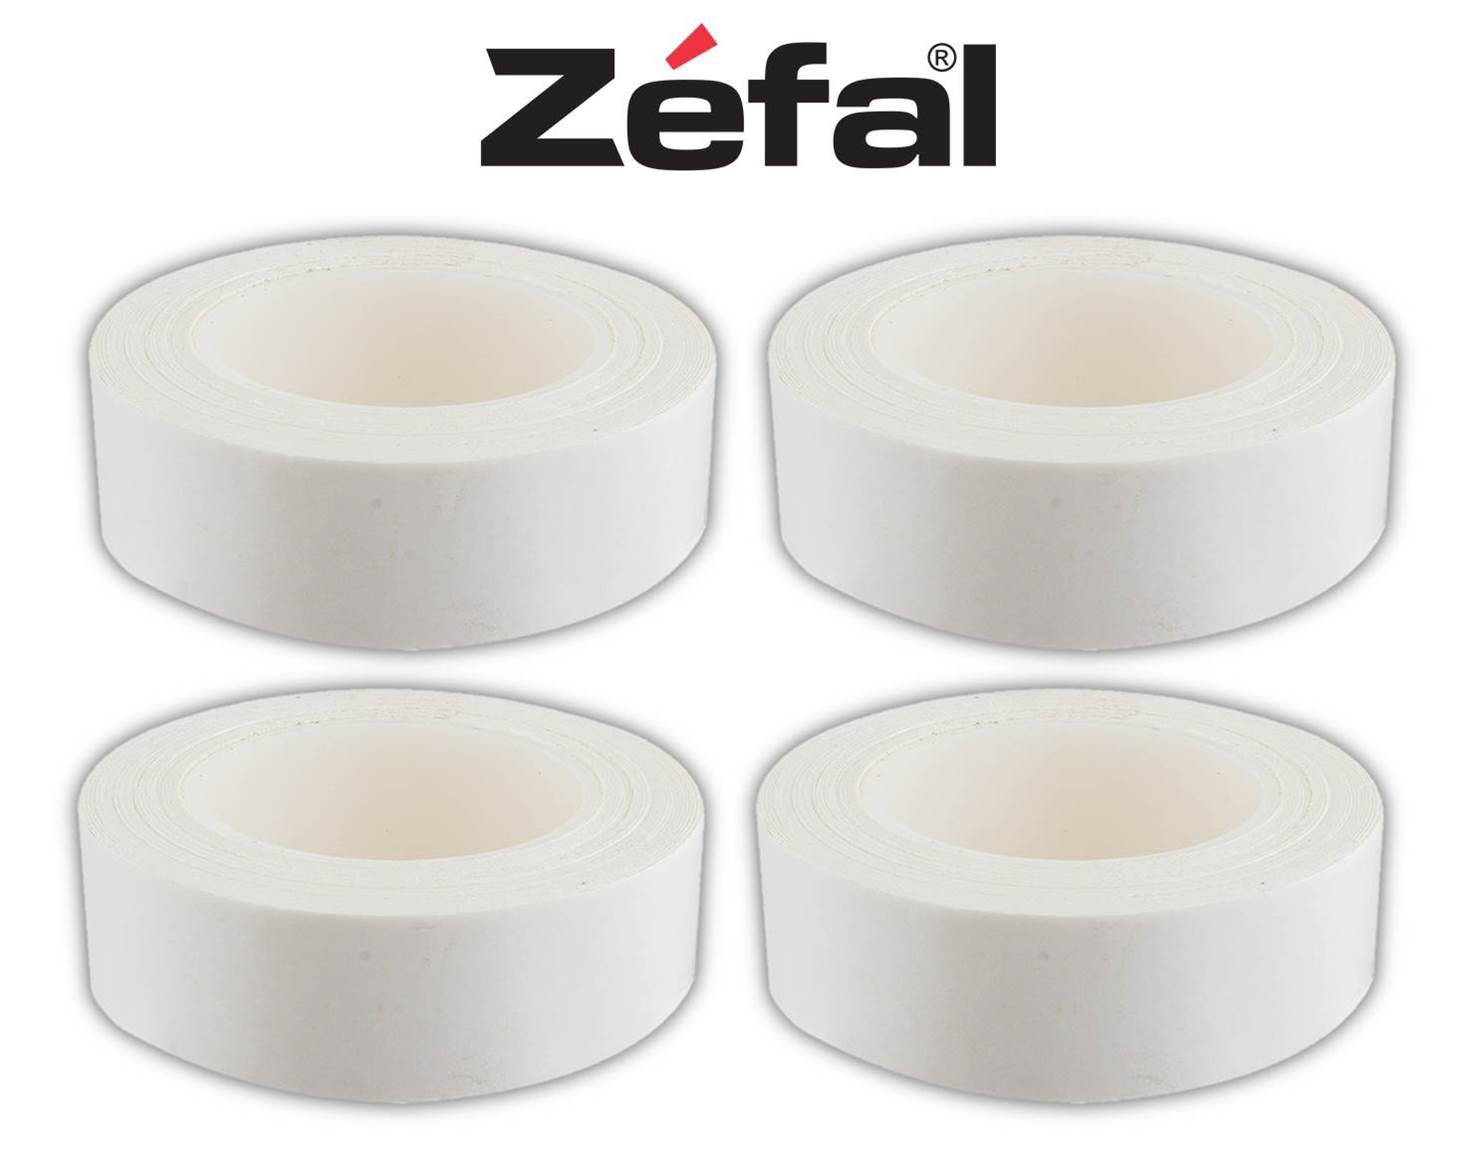 Zefal Tubular Tire Bike Rim Tape - Designed for Road CX 700c Tires - 4 PACK